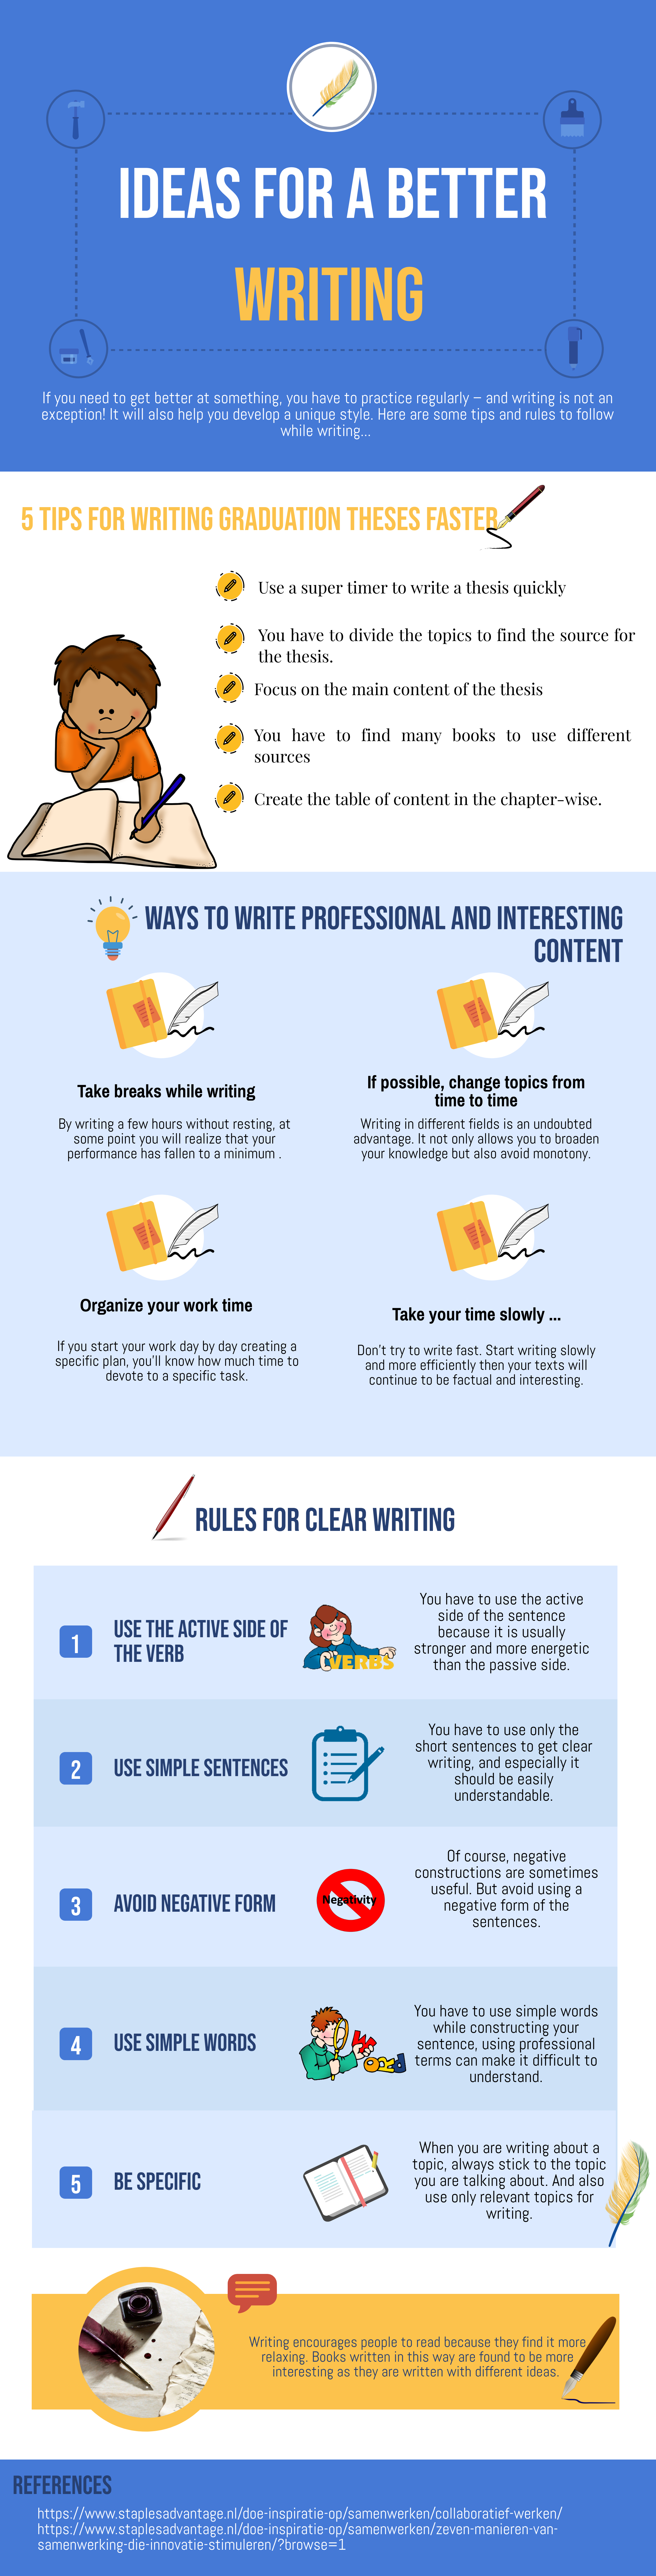 Ideas for a Better Writing Infographic